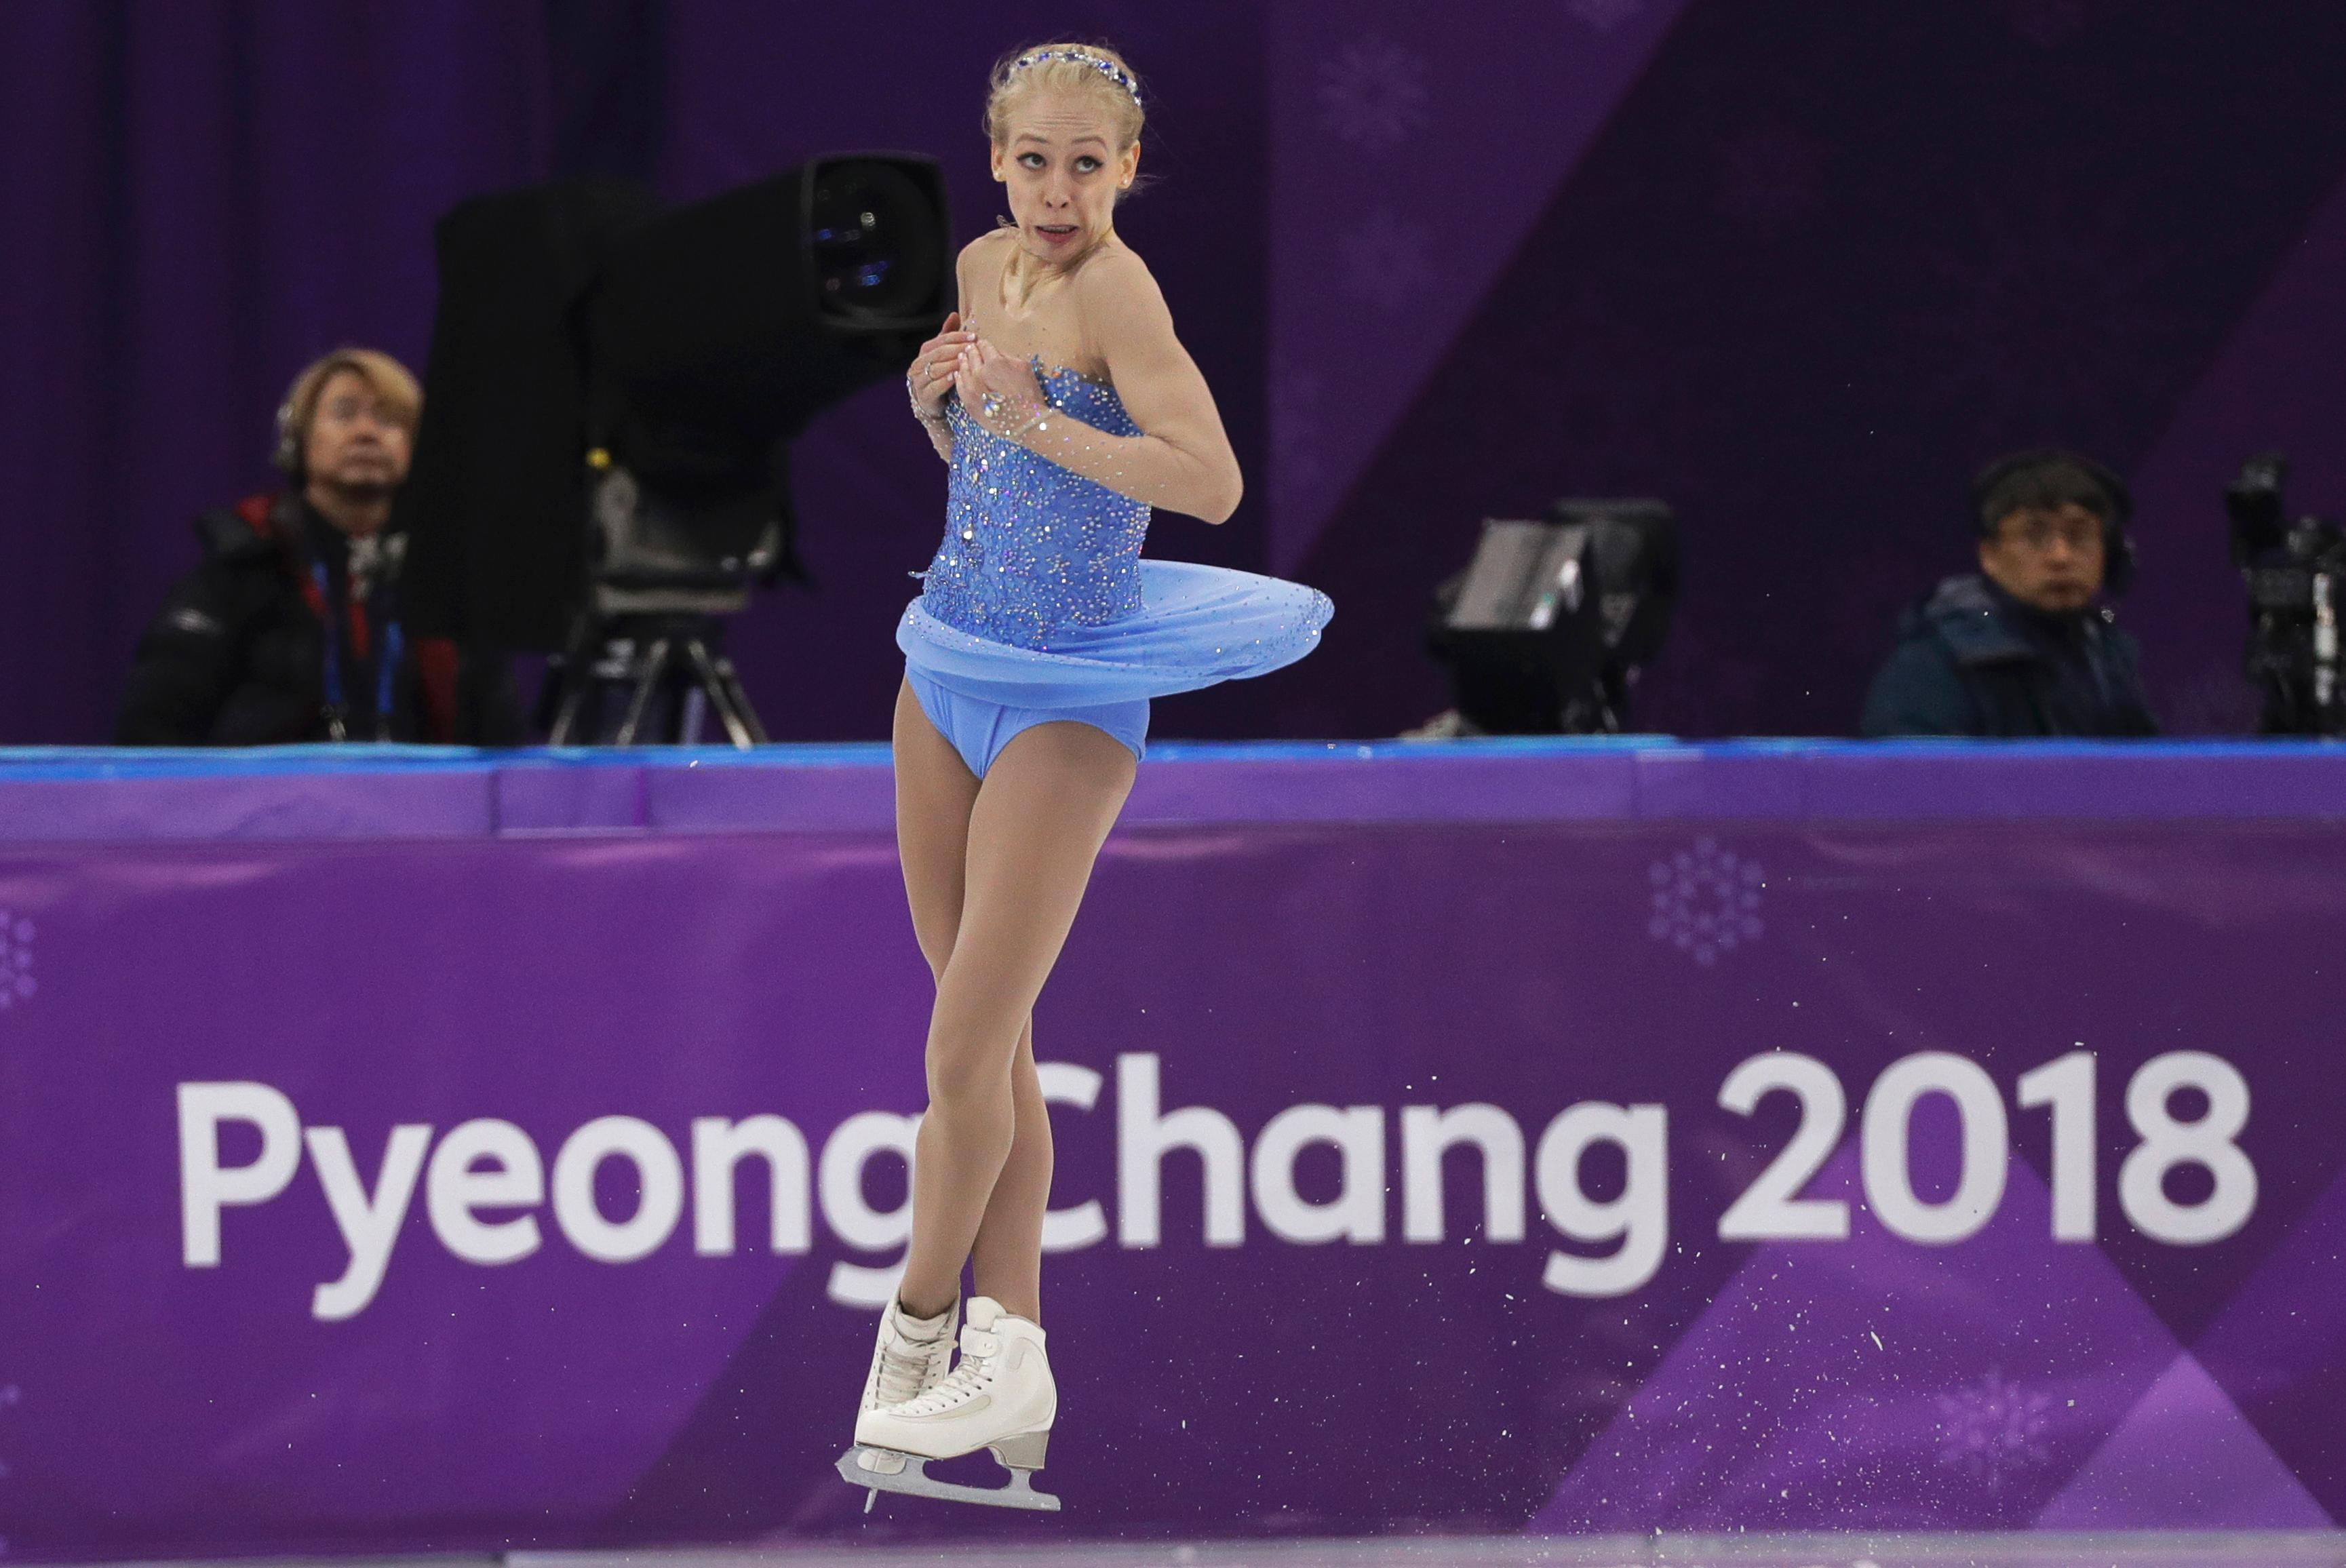 FILE - In this Feb. 23, 2018, file photo, Bradie Tennell performs during the women's free figure skating final in the Gangneung Ice Arena at the 2018 Winter Olympics in Gangneung, South Korea. For the season following an Olympics, Skate America certainly is packed with top U.S. competitors. The six-event Grand Prix series begins in Everett, Washington on Friday, Oct. 19. (AP Photo/David J. Phillip, File)